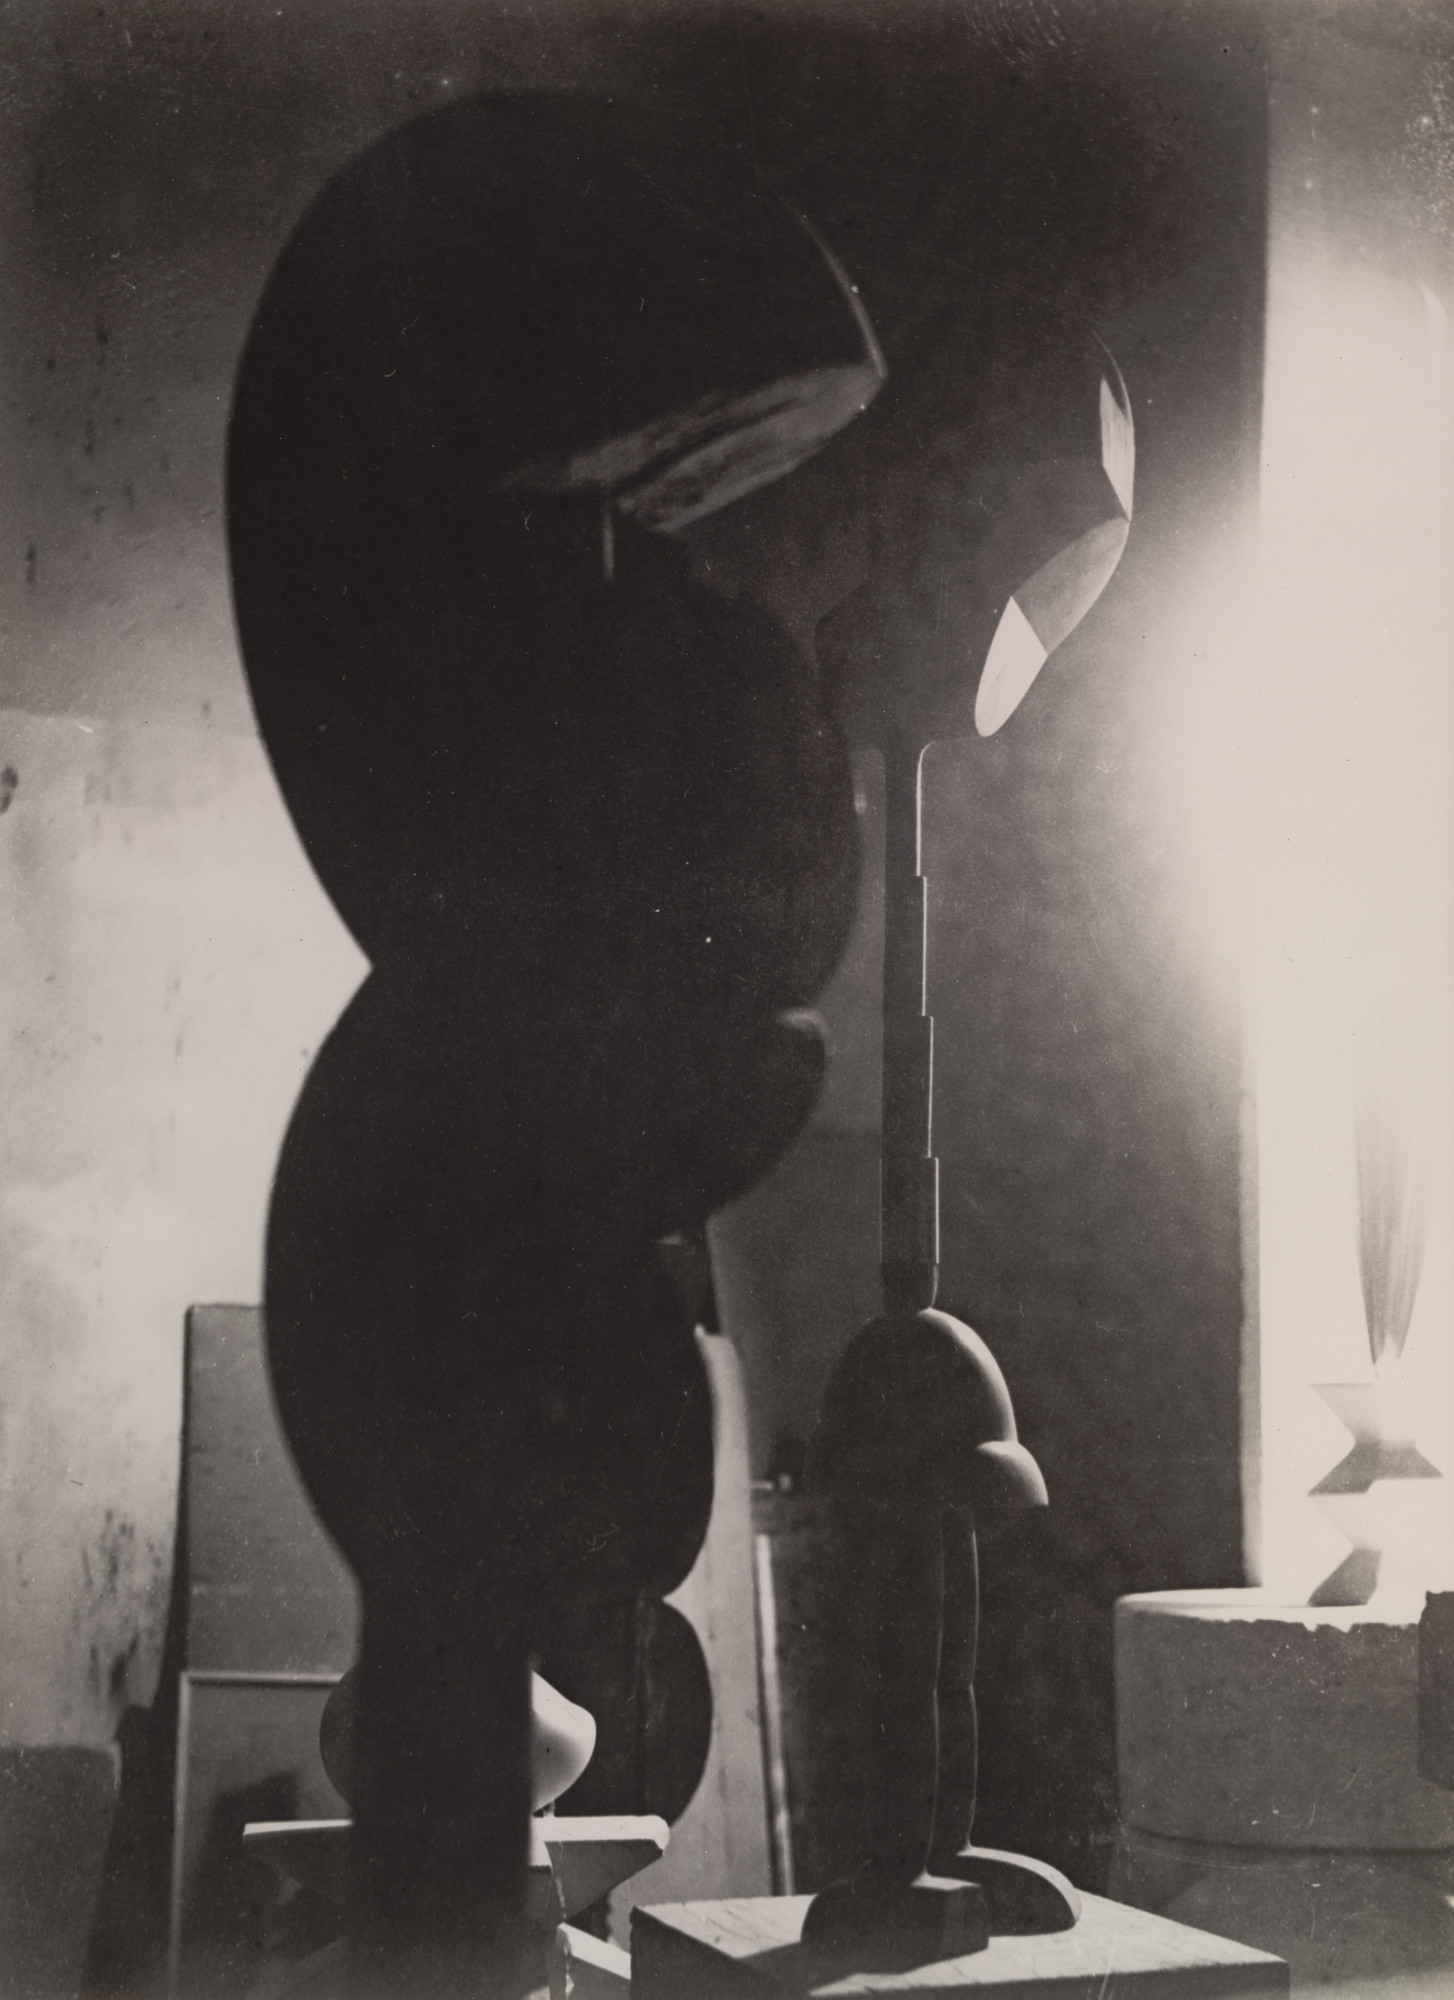 Constantin Brancusi. Untitled (View of the Studio with Eve, Plato, and Golden Bird). 1922